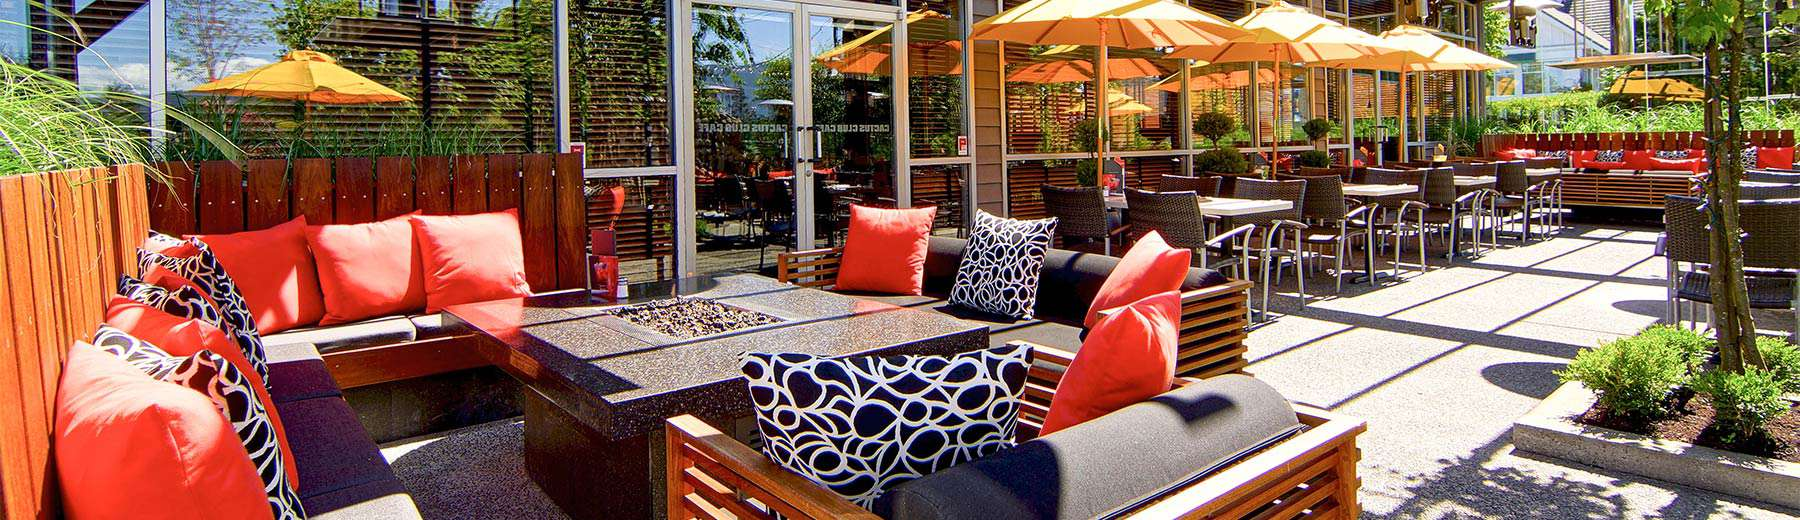 Turner Road Nanaimo Patio | Cactus Club Cafe